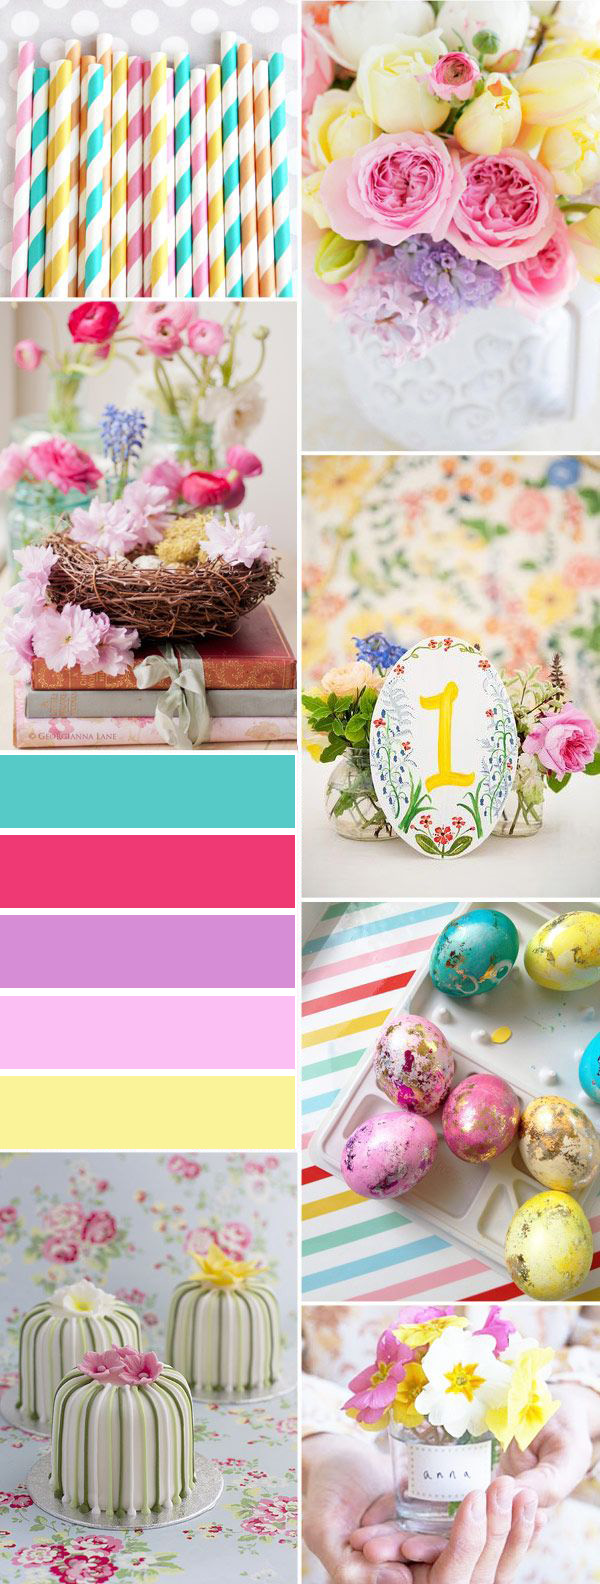 aqua pink and purple easter themed bridal shower ideas